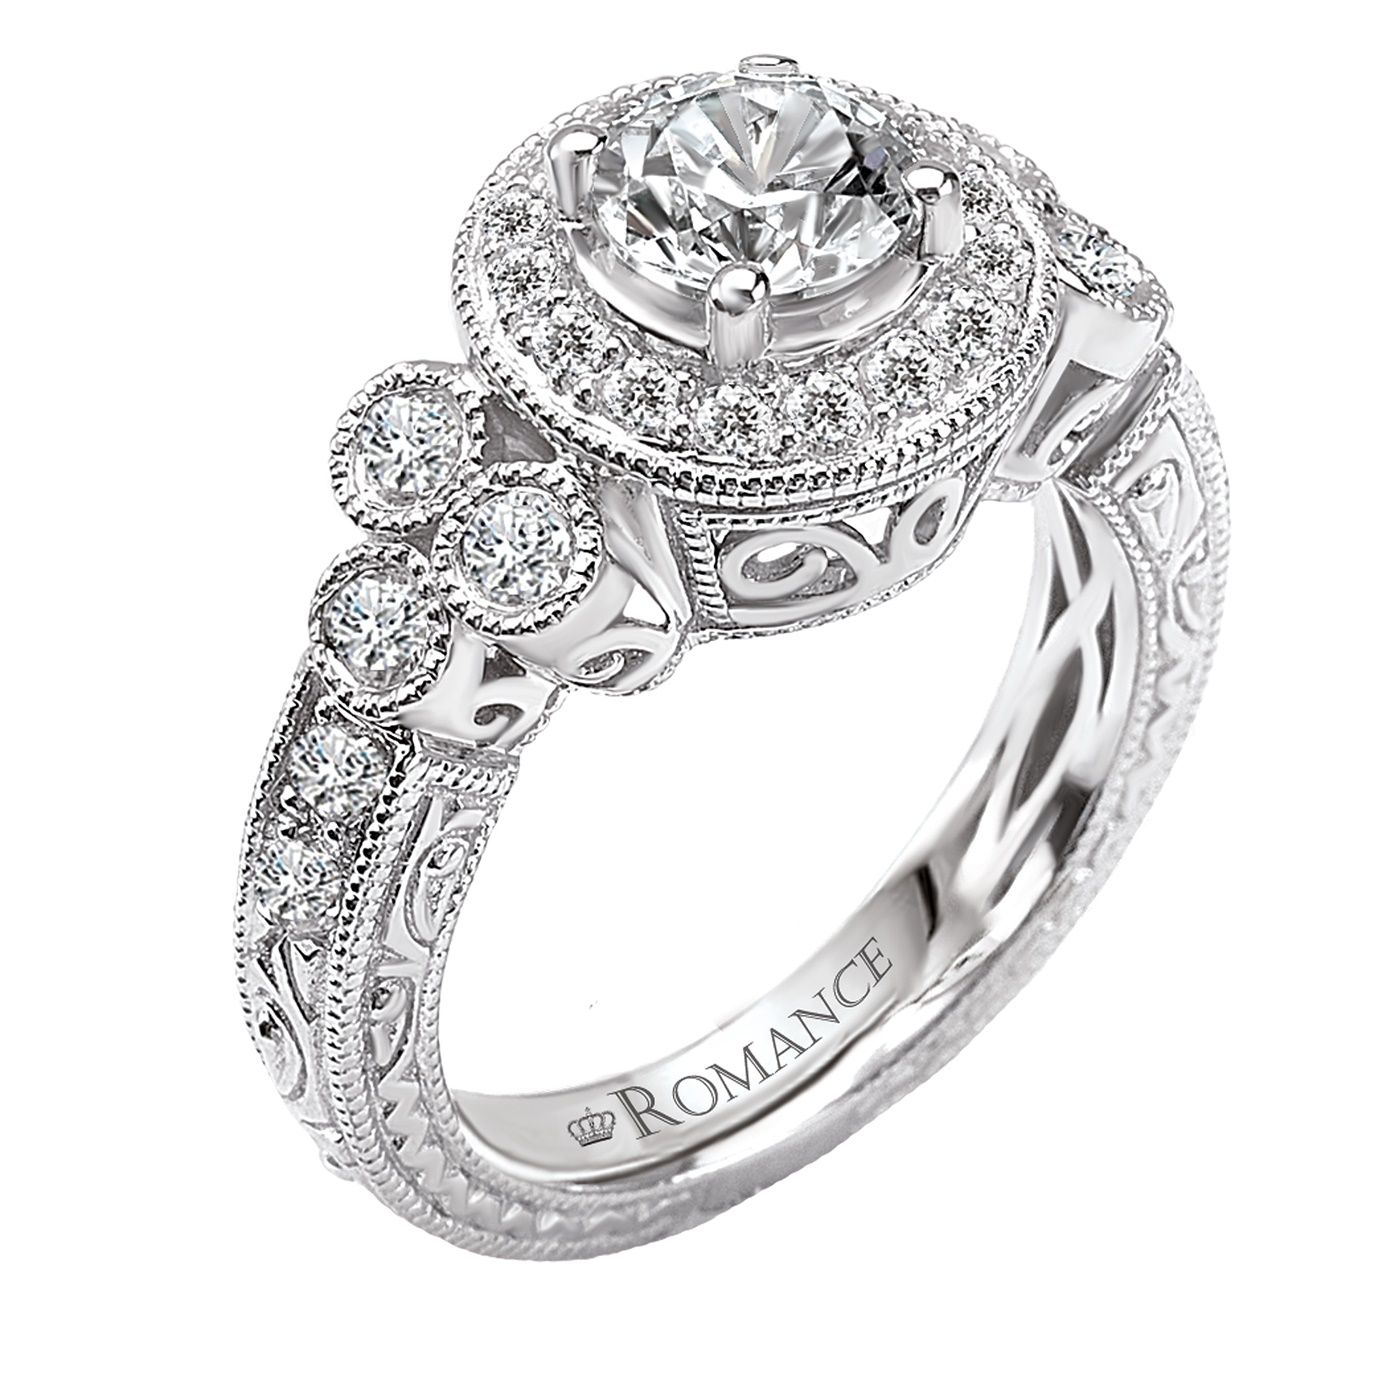 Antique Style Engagement Ring Romance